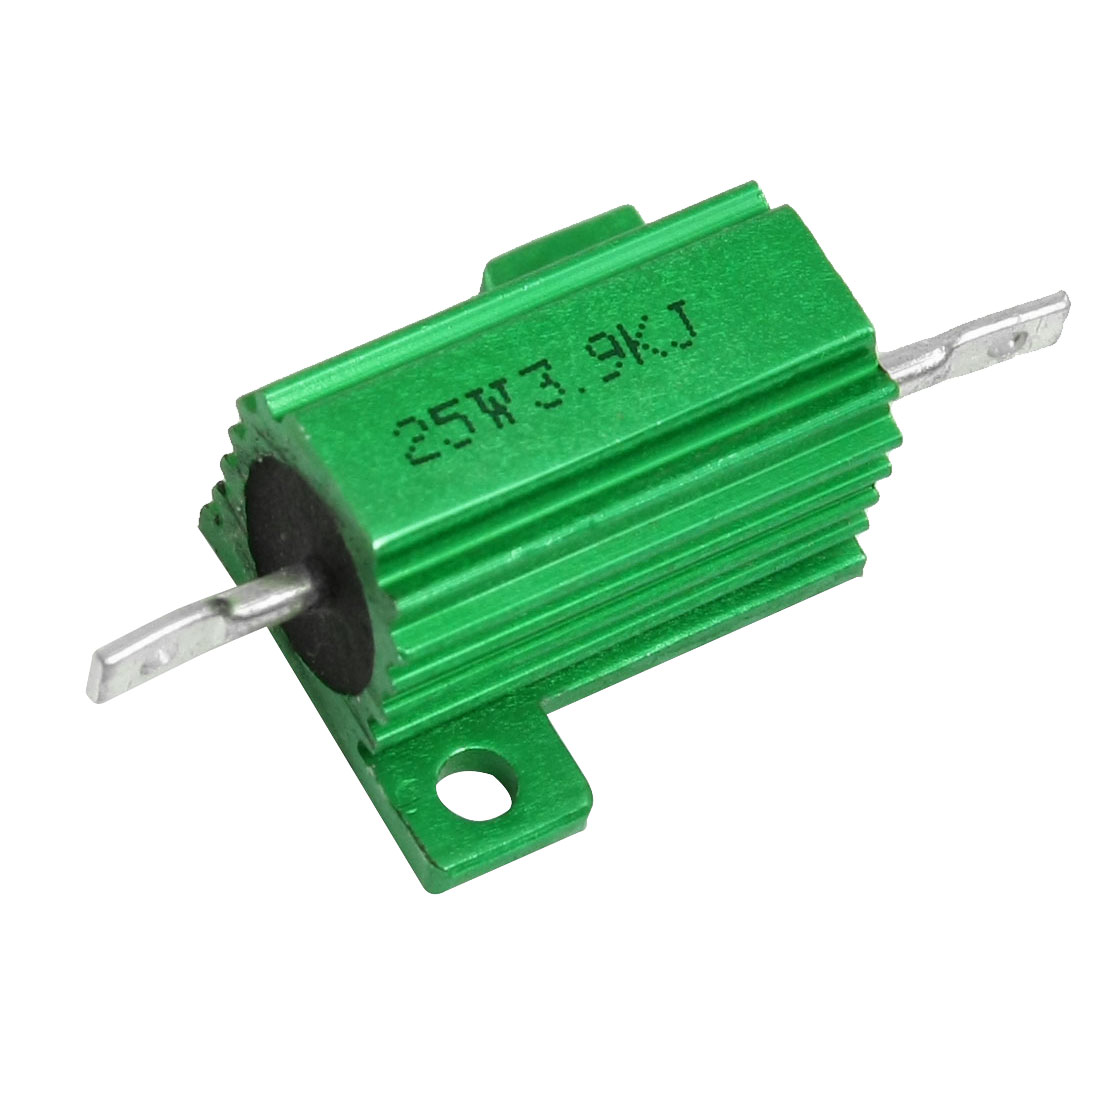 Green Aluminum Housed Clad Wirewound Resistor 5% 3.9K Ohm 25 Watt